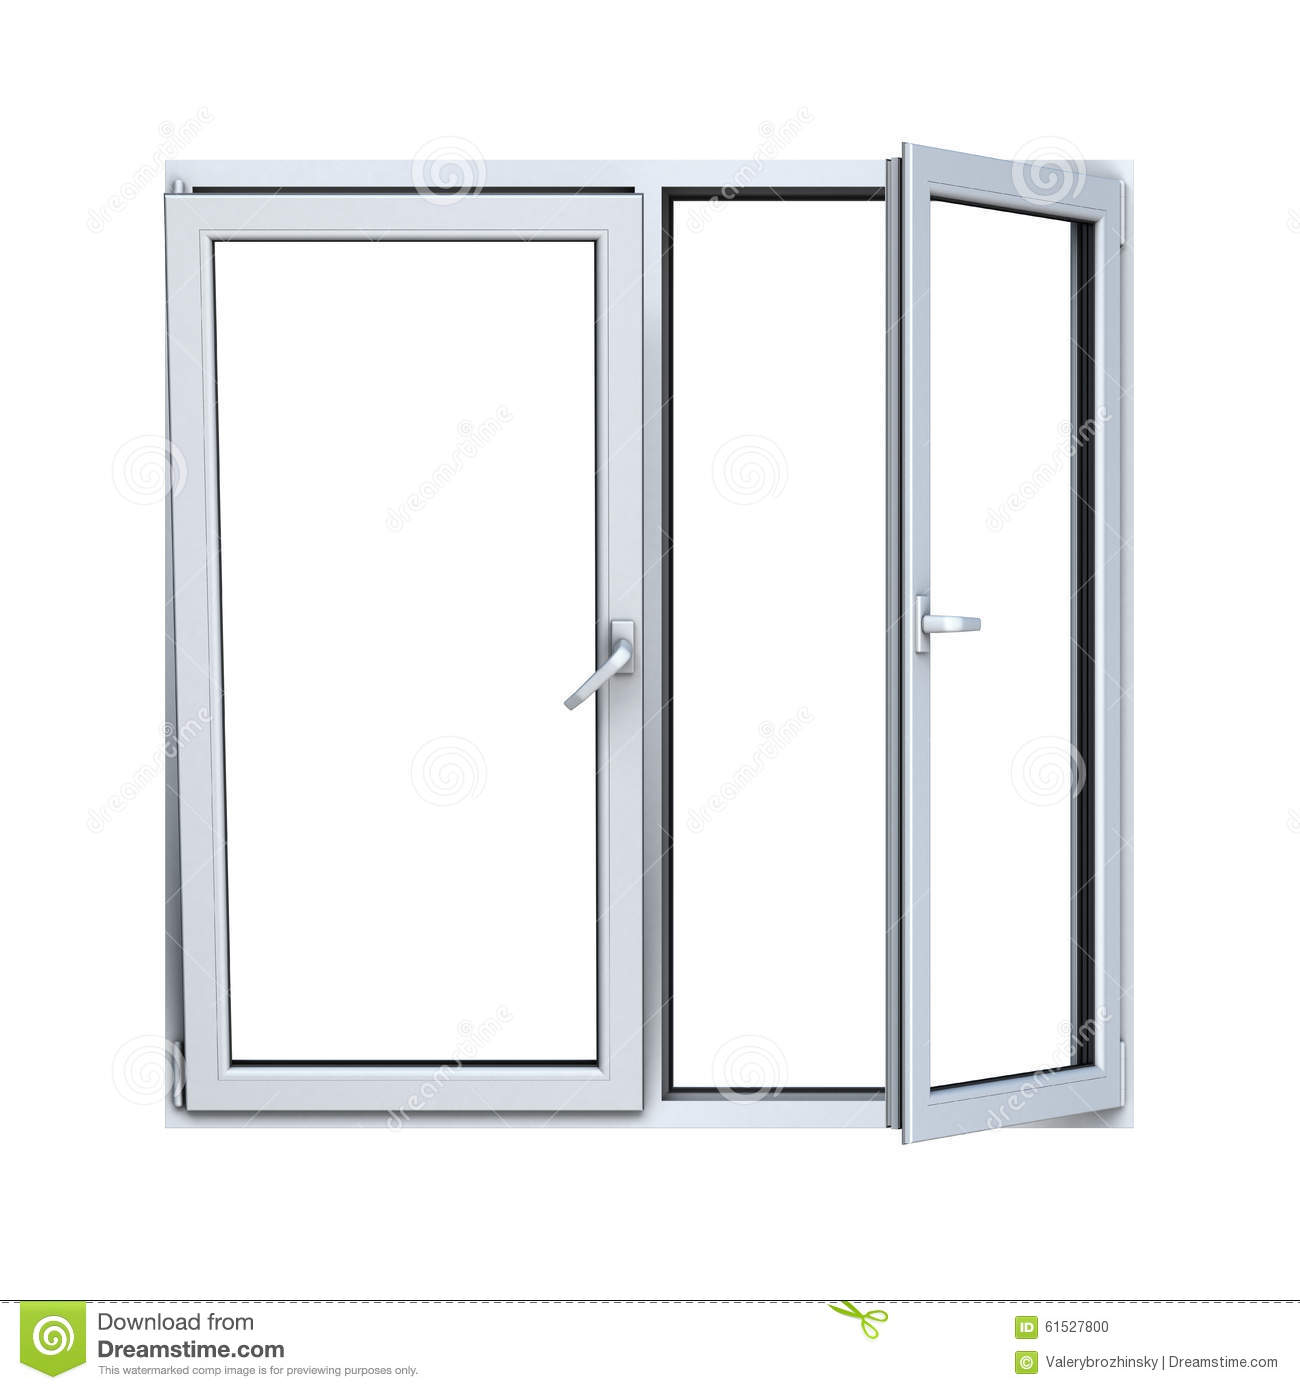 Open plastic window frame stock illustration image 61527800 for Window plastic